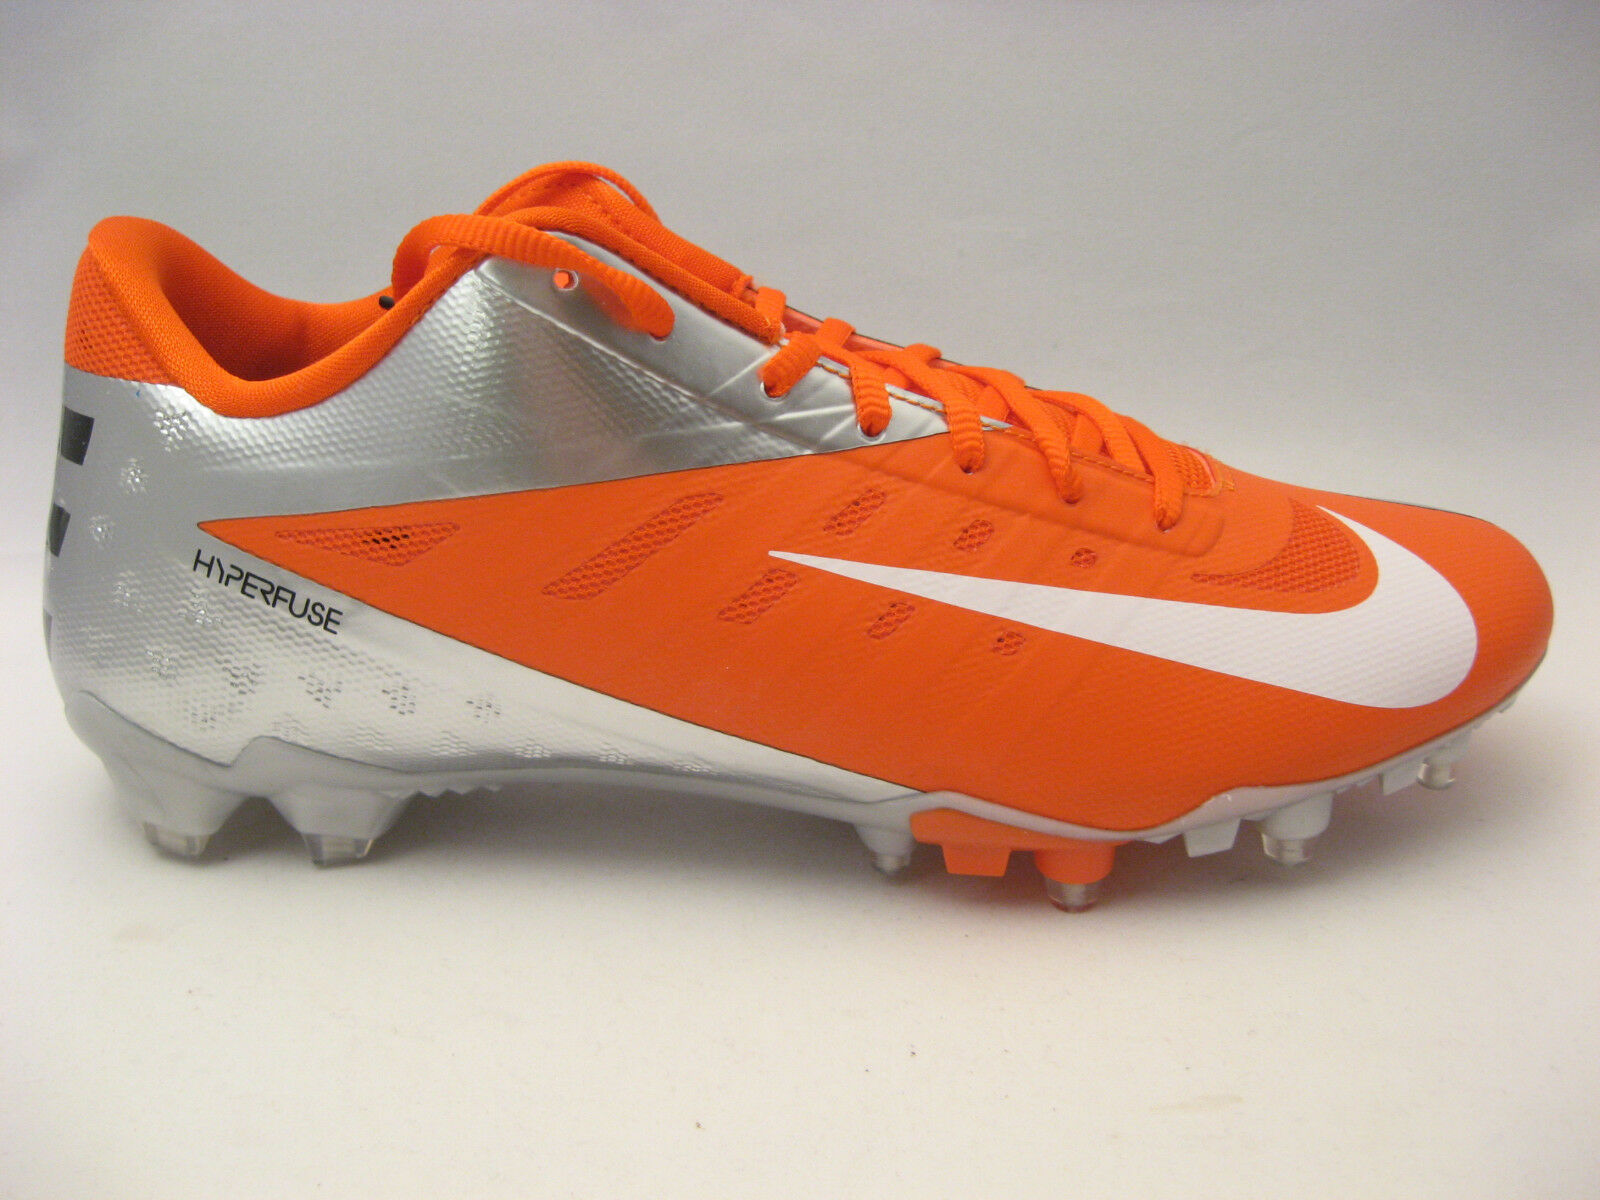 Nike Vapor Talon Elite Low Football Cleats 14 orange Flash White Chrome  145 NEW